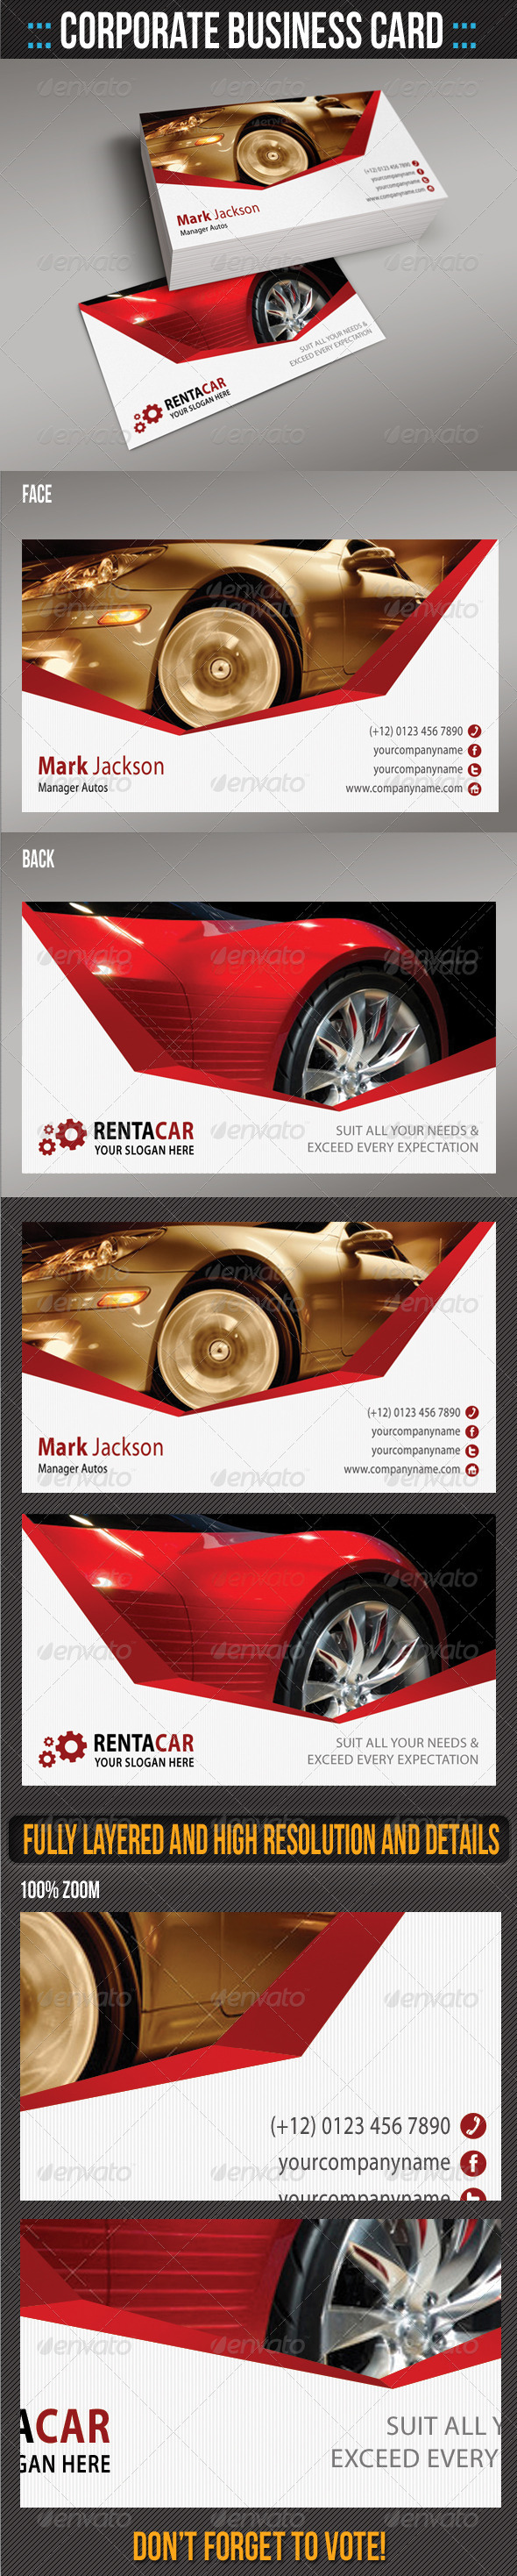 Corporate Business Card 08 - Creative Business Cards